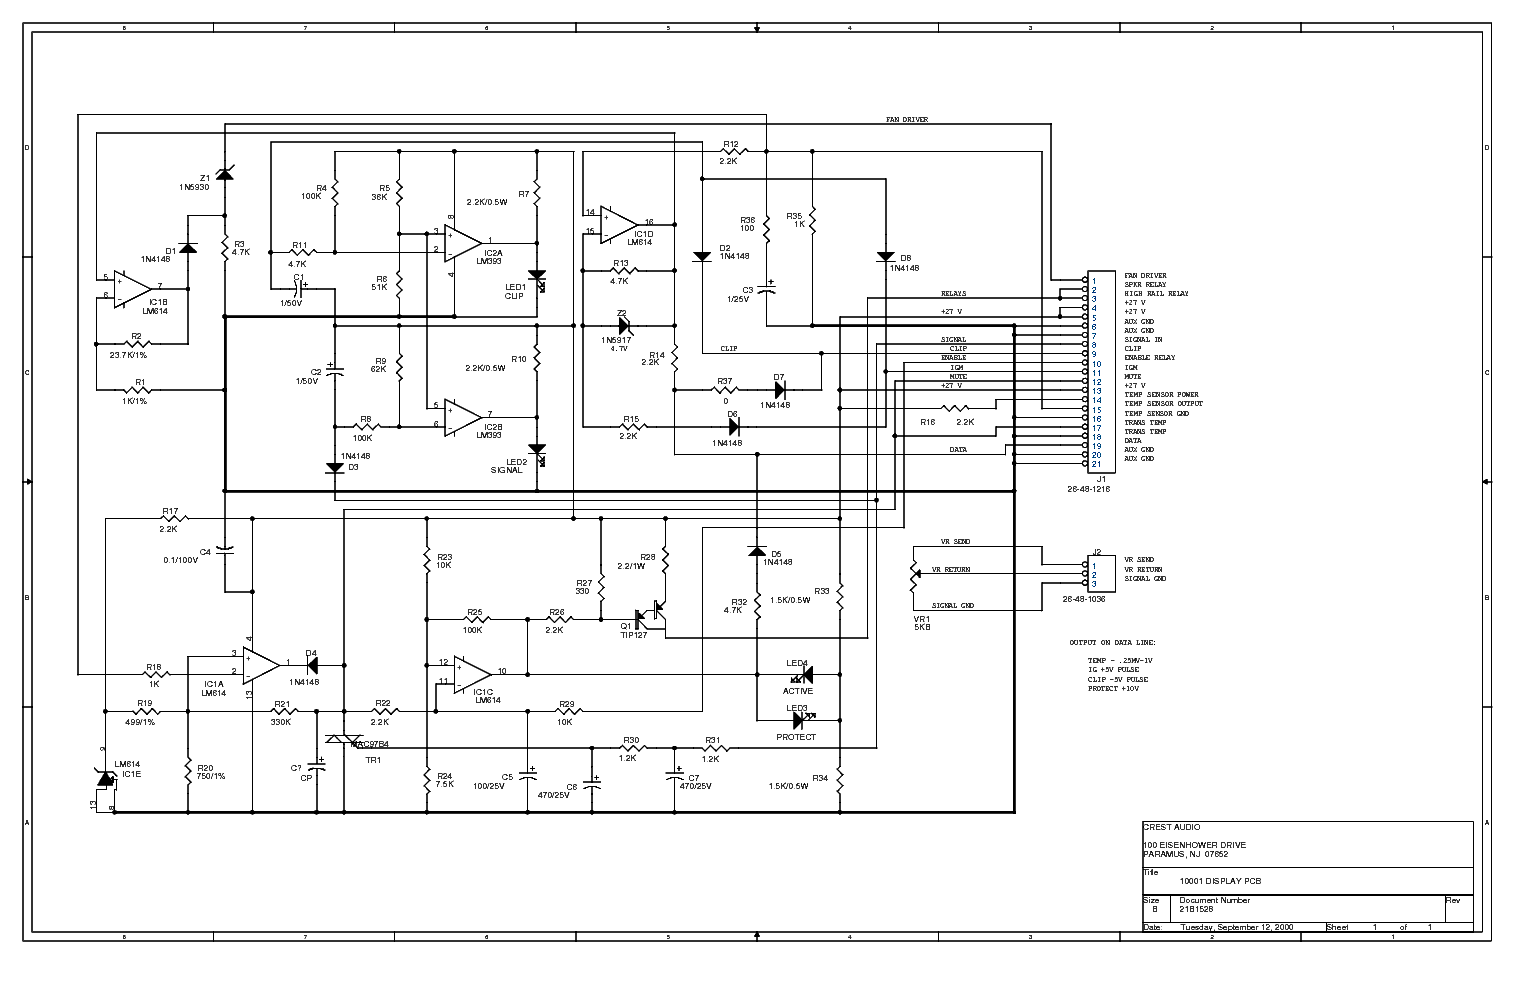 Crestaudio Pro Service Manual Download Schematics